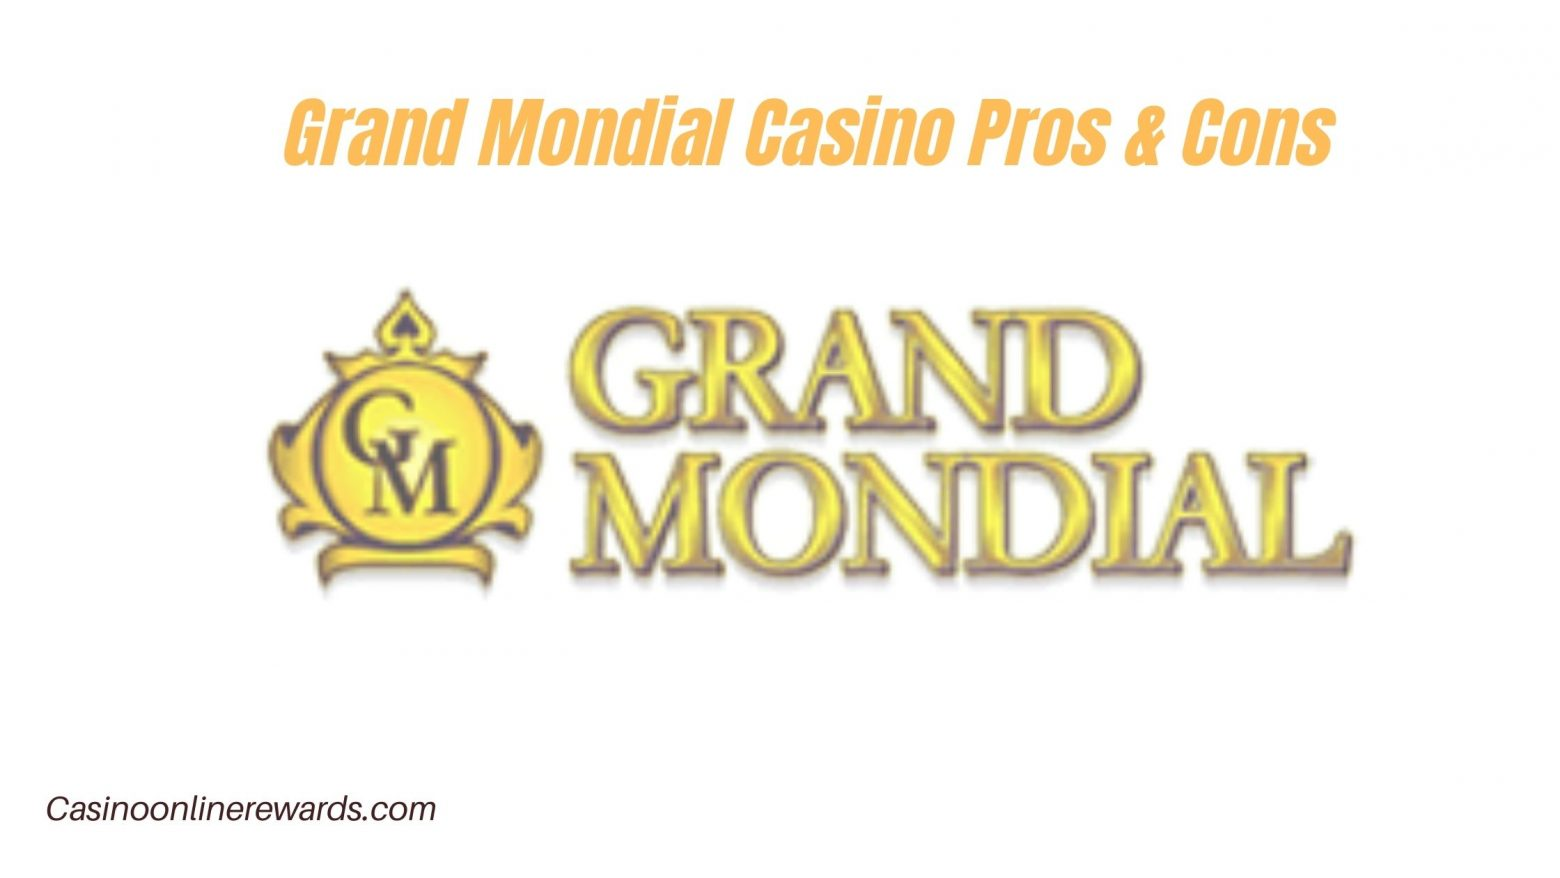 Most Essential Information You Need to Have Regarding Grand Mondial Casino